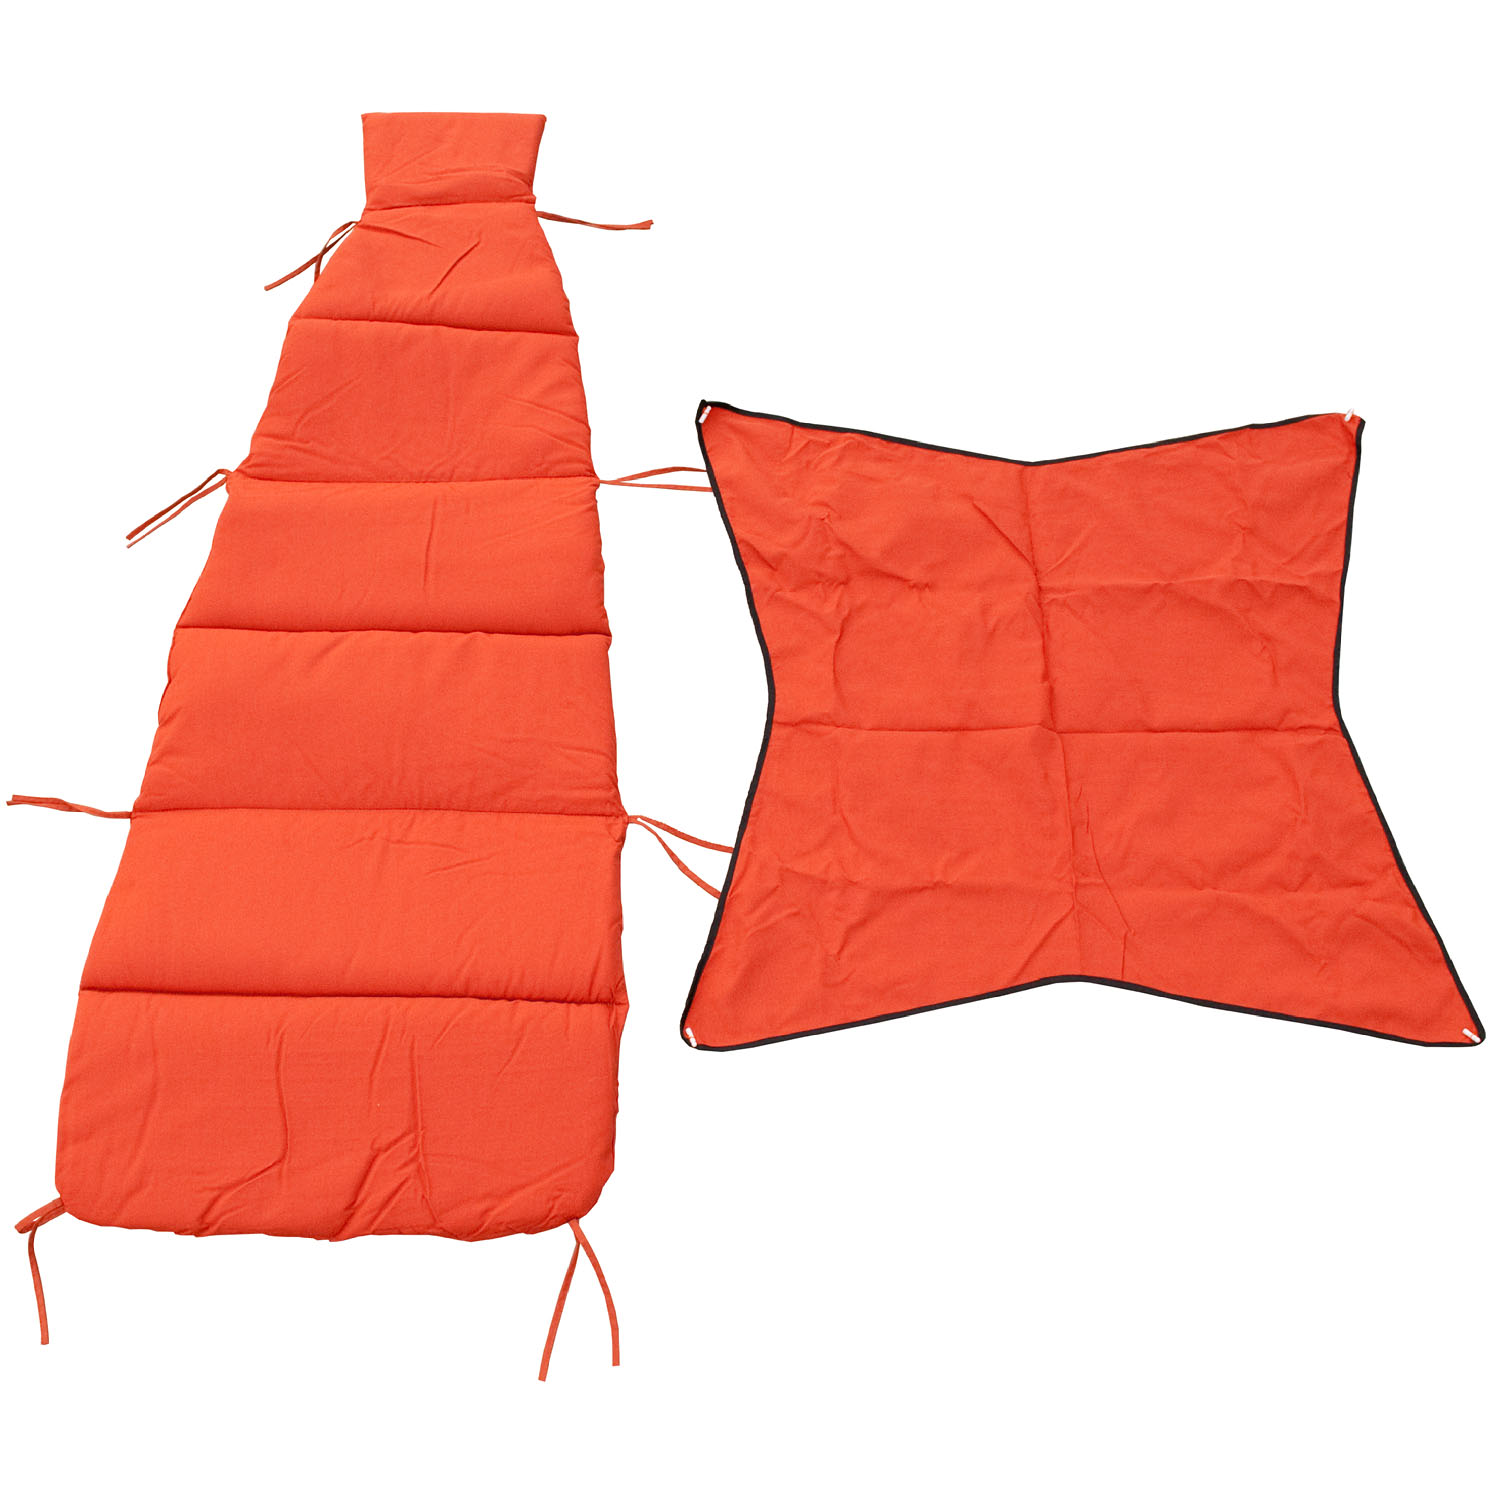 Cloud-9 Burnt Orange Pad/Pillow/Canopy Set